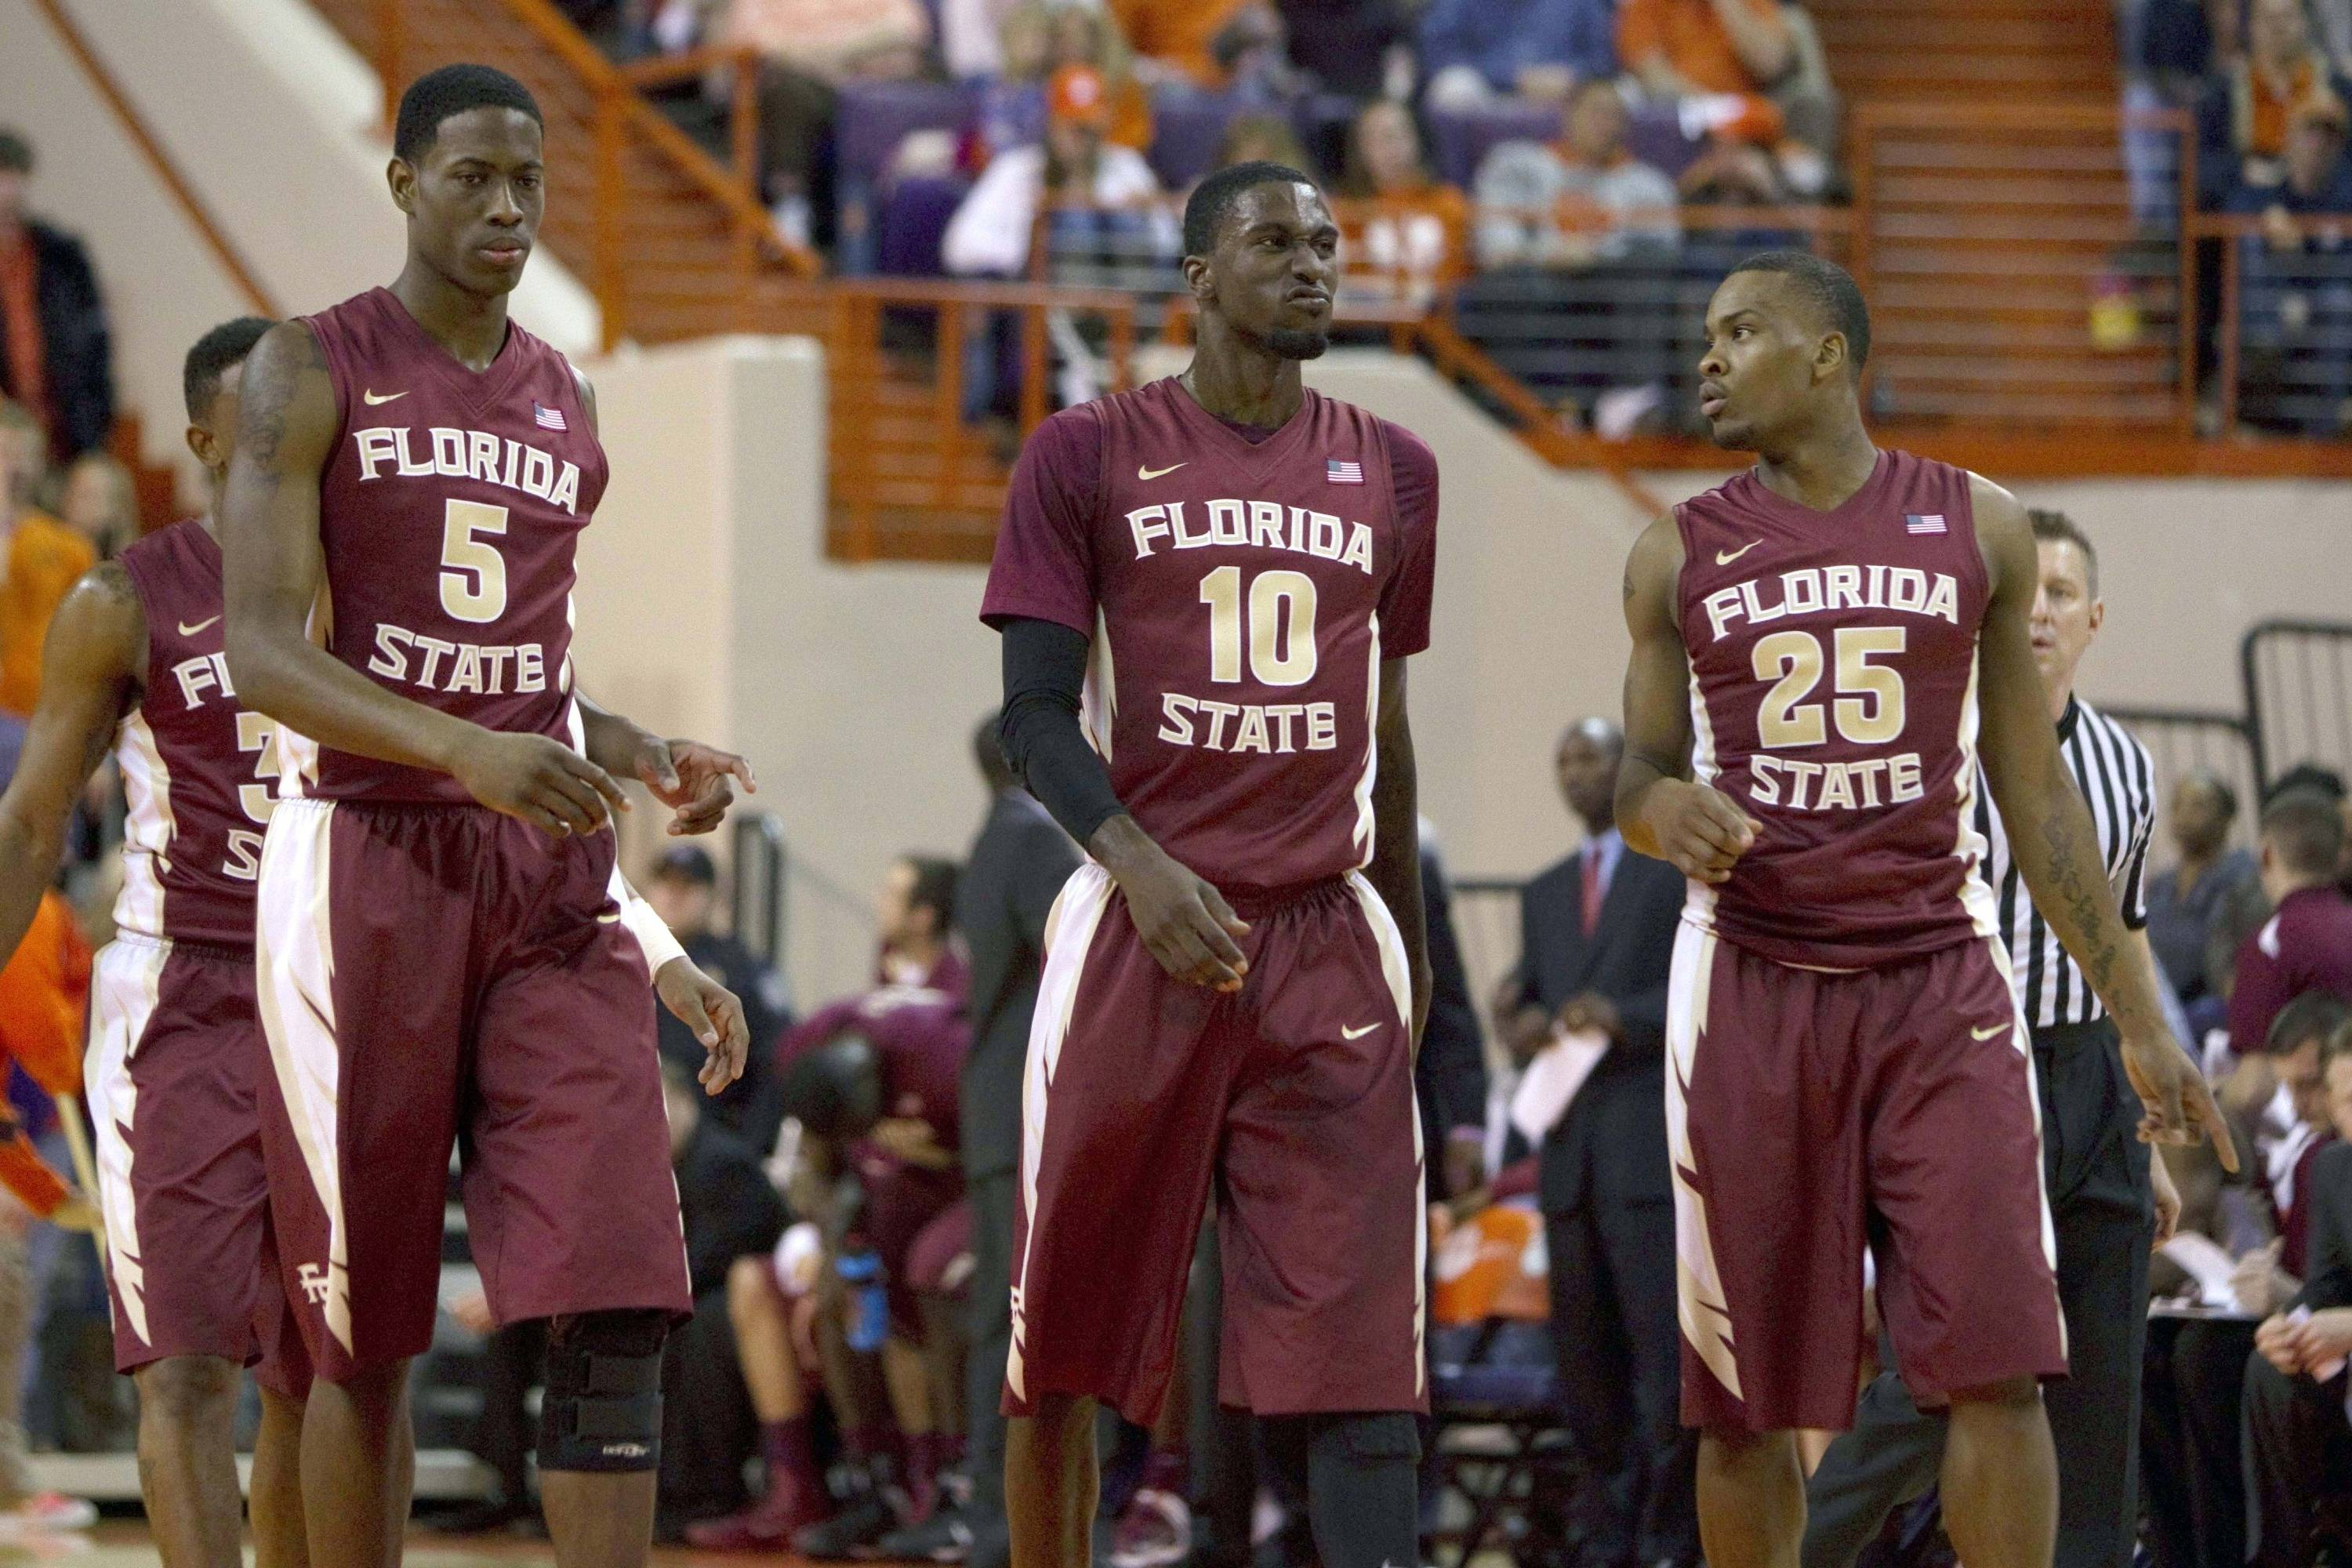 Jan 9, 2014; Clemson, SC, USA; Florida State Seminoles forward Jarquez Smith (5) forward Okaro White (10) and guard Aaron Thomas (25) during the first half against the Clemson Tigers at J.C. Littlejohn Coliseum. Mandatory Credit: Joshua S. Kelly-USA TODAY Sports